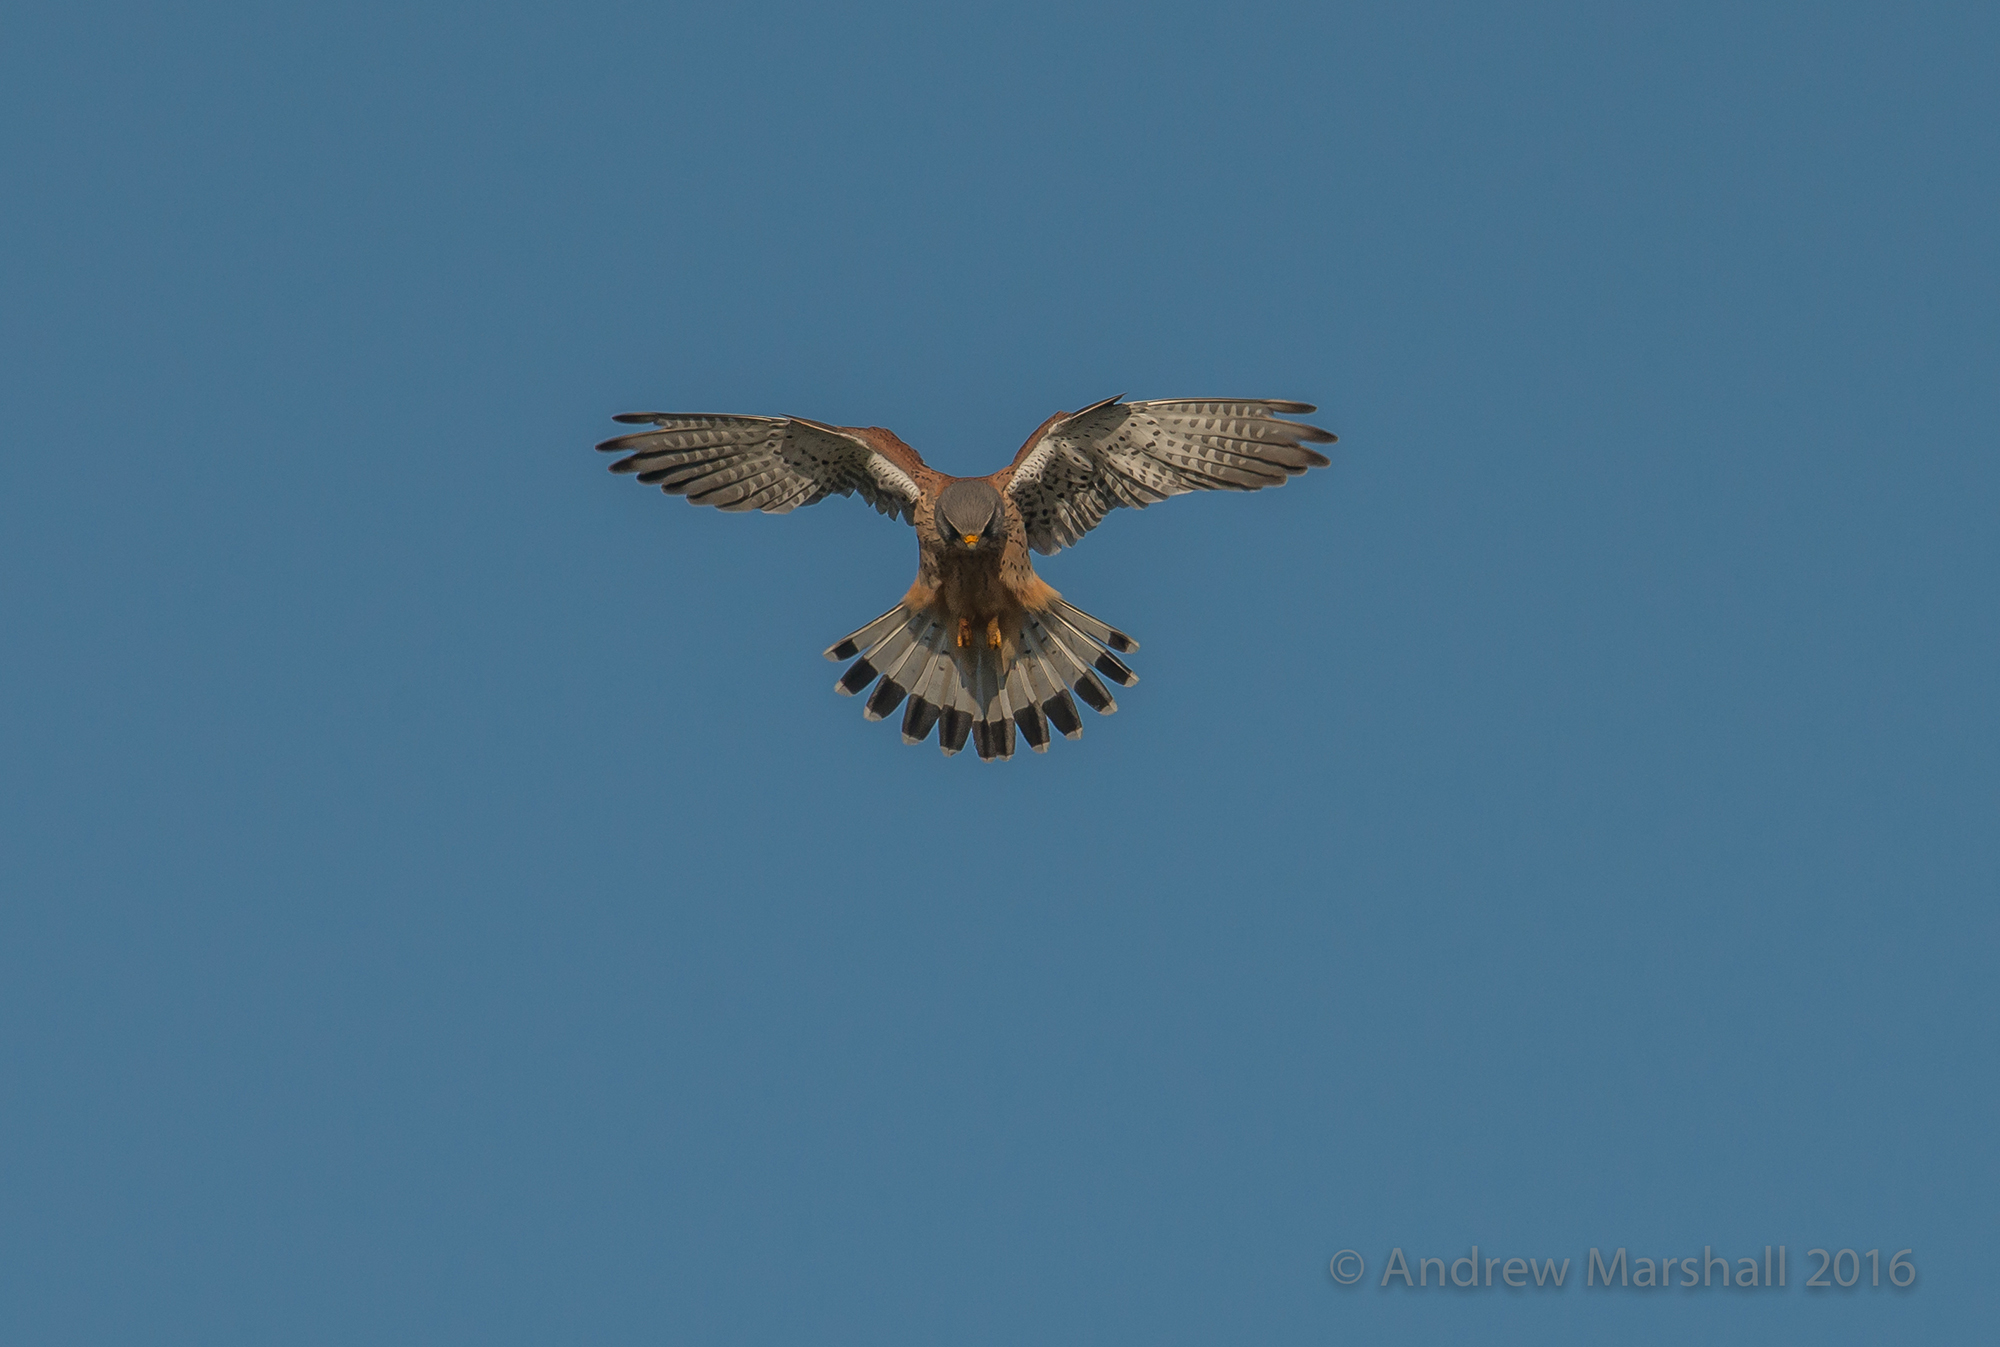 Male kestrel hunting over Pink Hill meadow in Oxfordshire. Nikon D800E, Nikkor 500mm f/4 and a 1.4 convertor at 700mm, ISO 360, 1/2000s at f/8 Handheld. April. This is a big crop but the Nikon D800E has plenty of pixels to play with. © Andrew Marshall